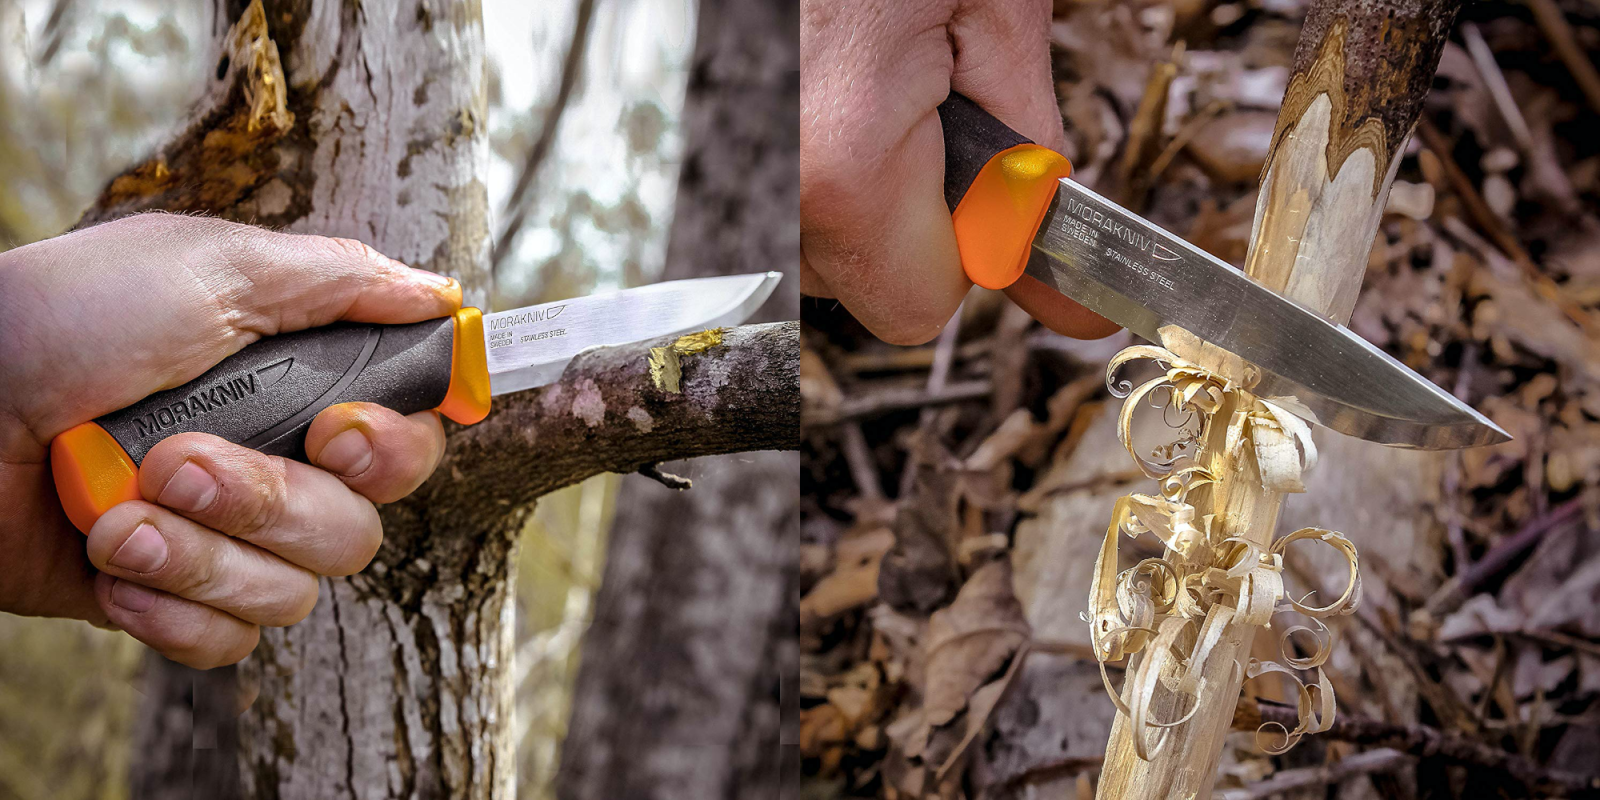 Morakniv's #1 best-selling outdoor knife is down to $13 at Amazon